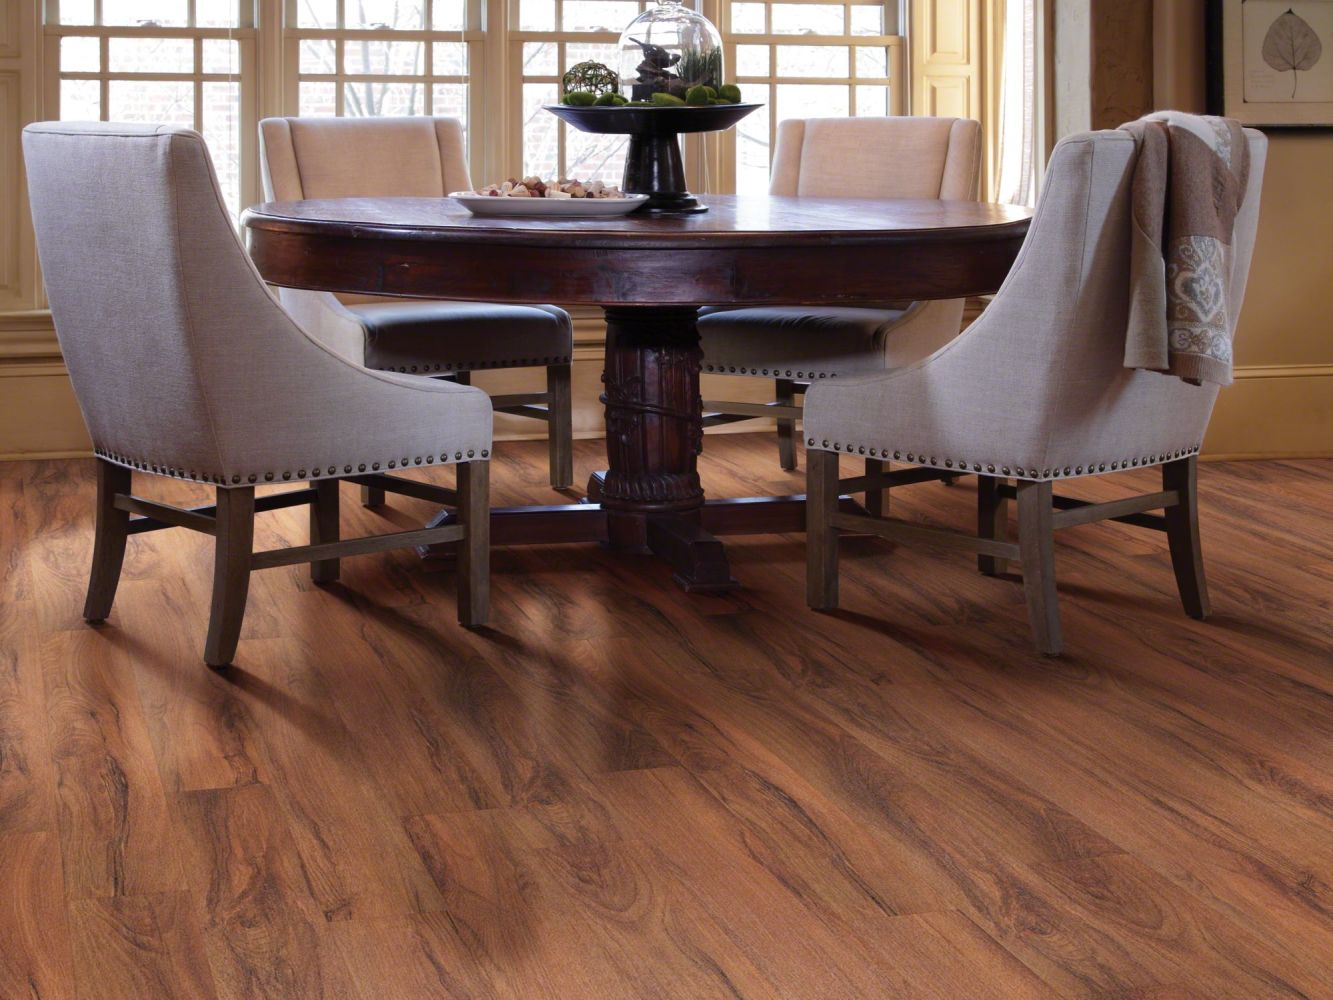 Shaw Floors Exclusive Pacific Coast12 St. Louis 00618_1029V